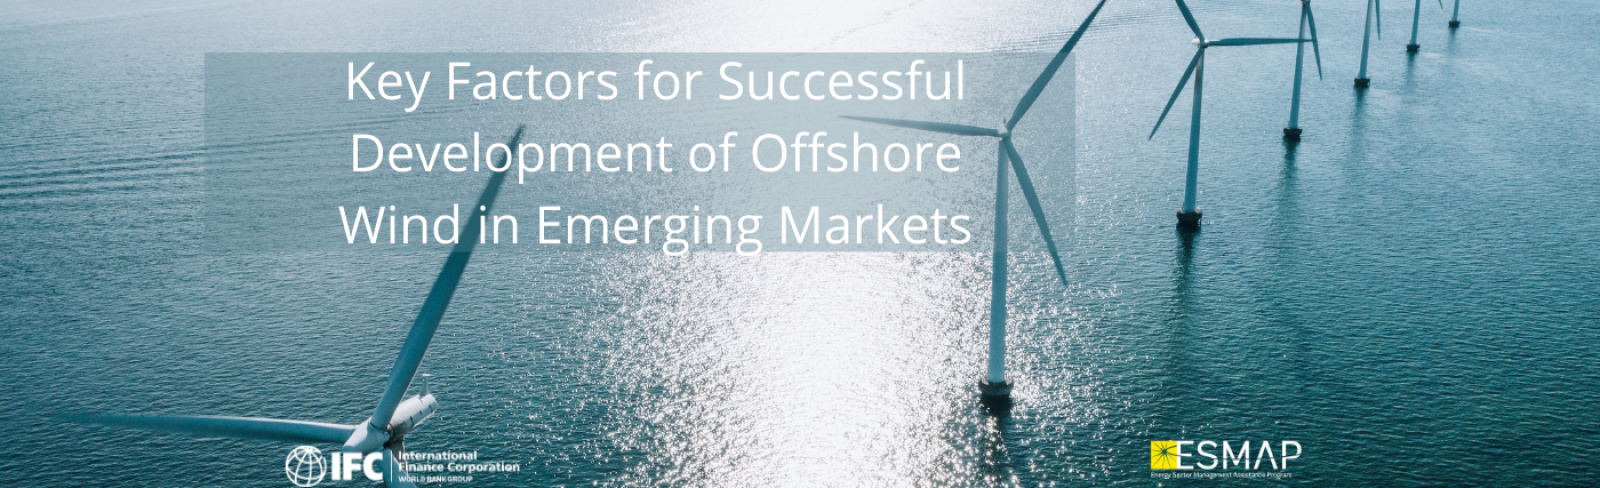 New ESMAP Report Highlights Key Factors for Successful Development of Offshore Wind in Emerging Markets